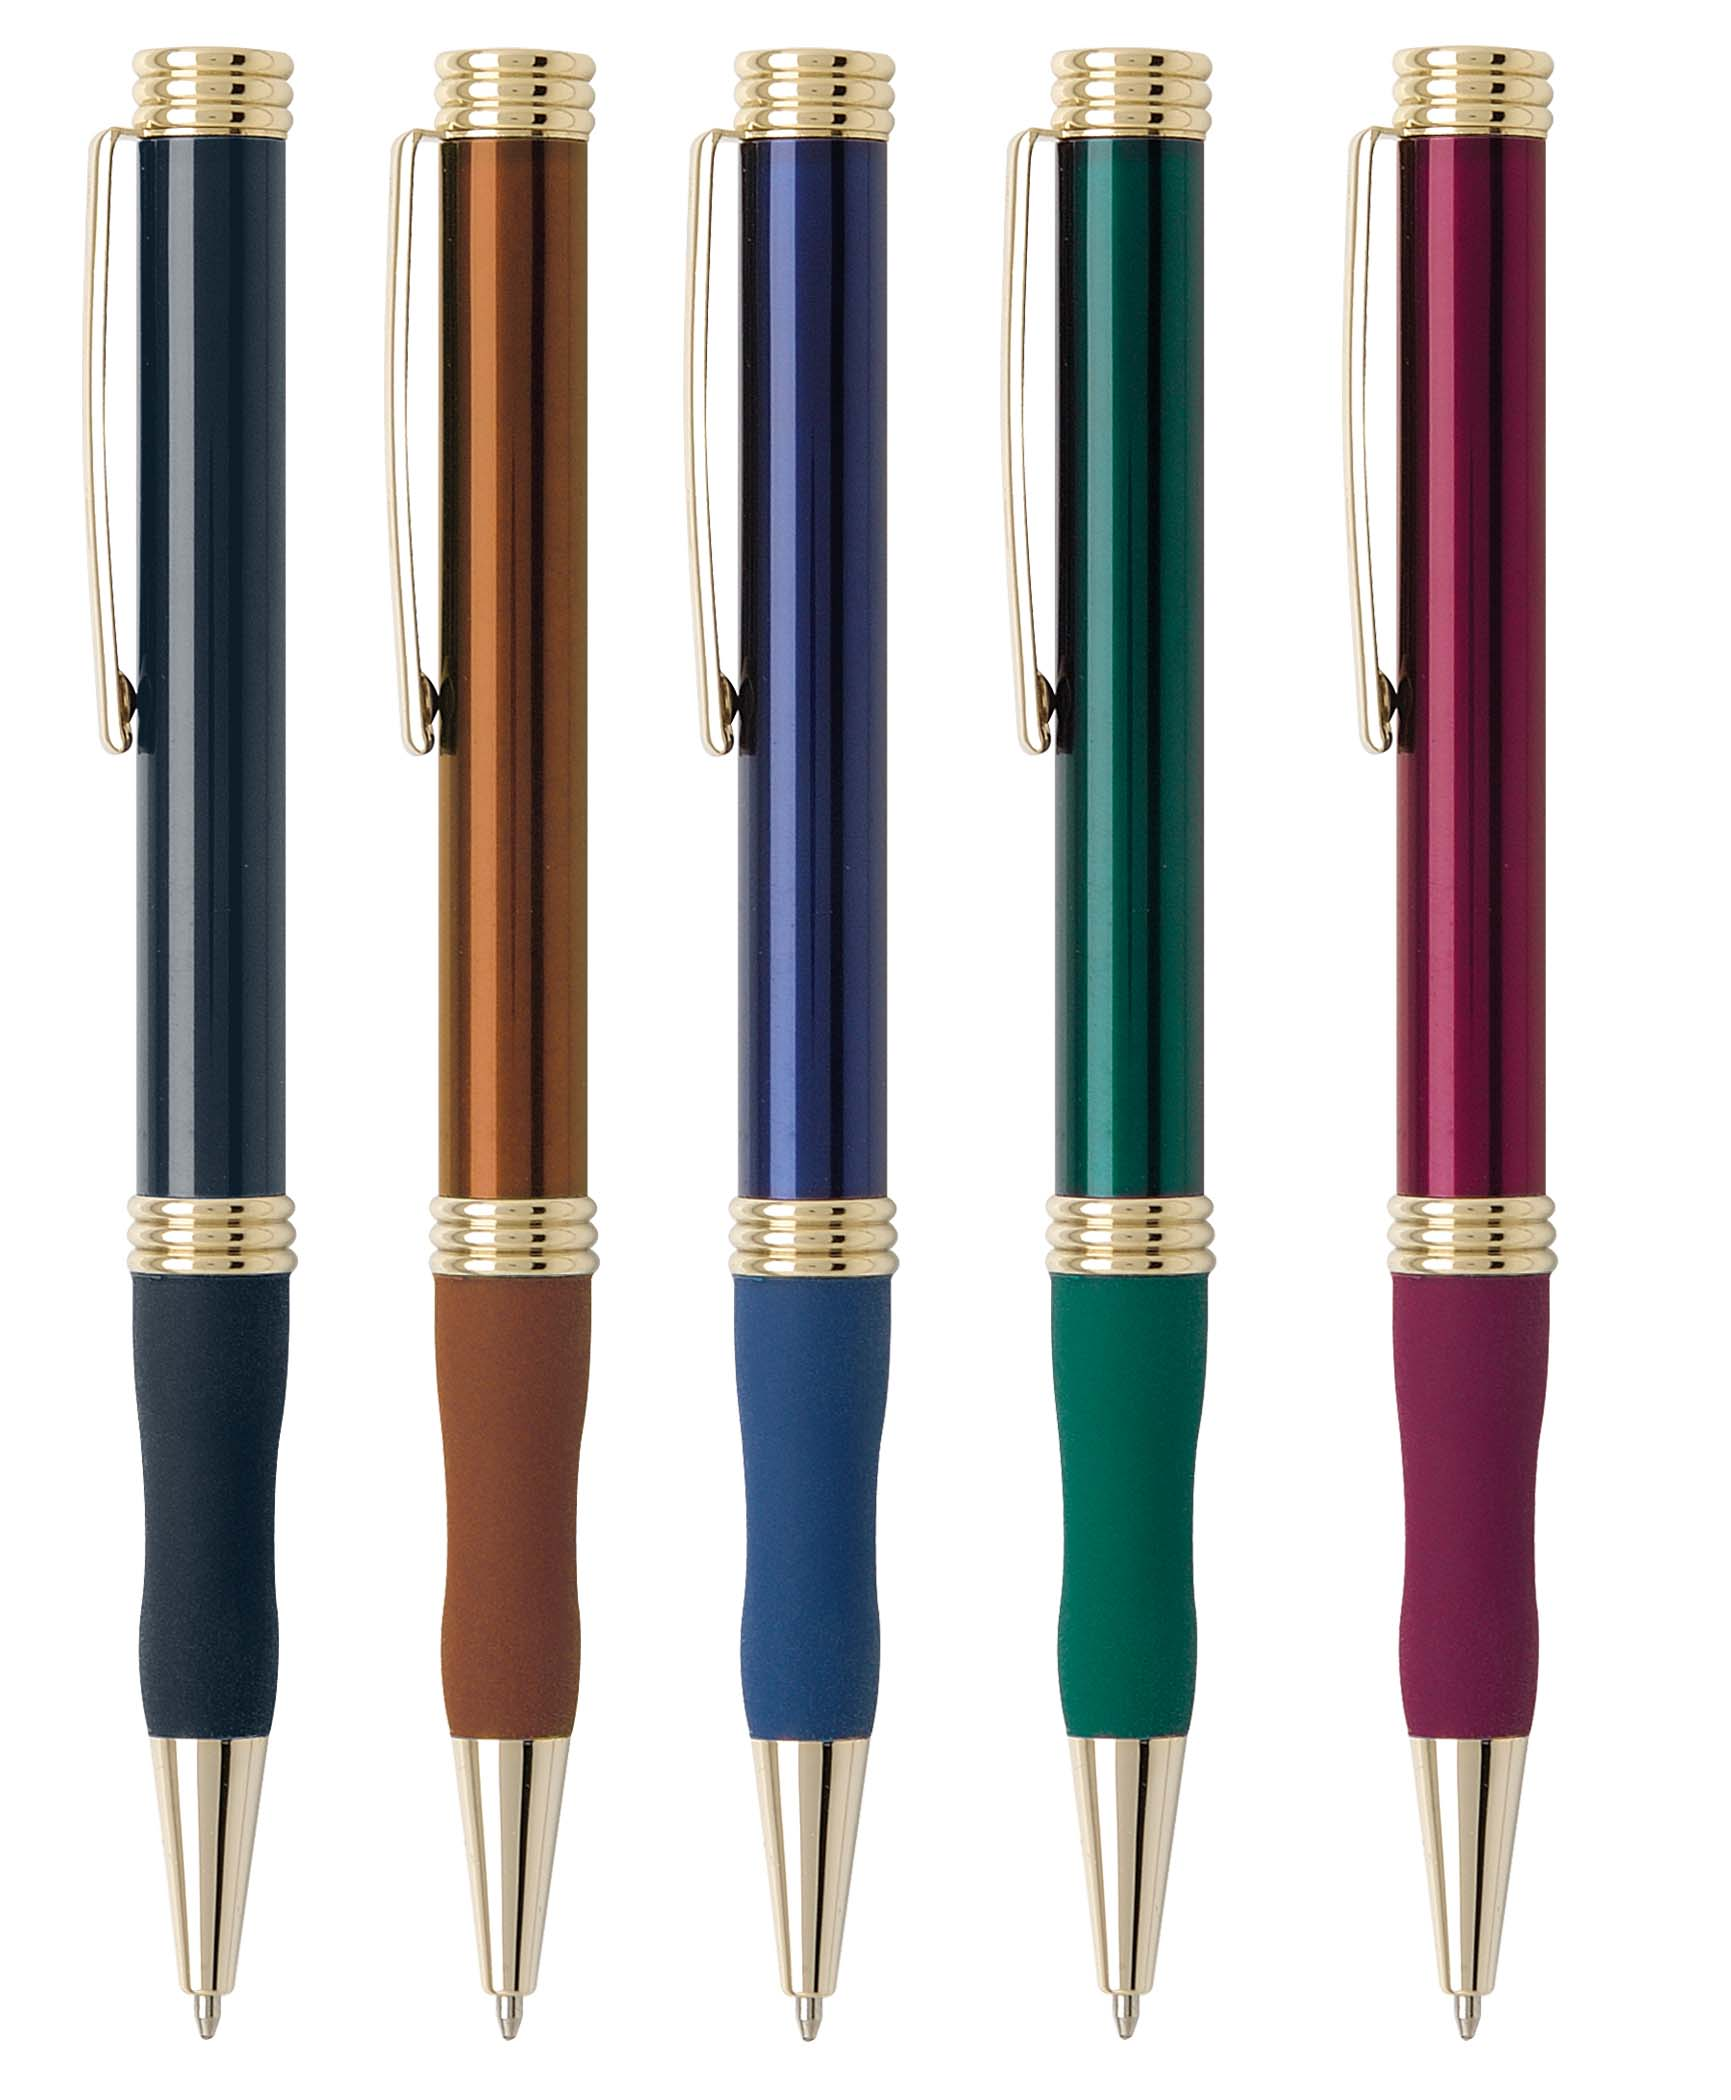 Pacesetter Corporate Engraved Pen